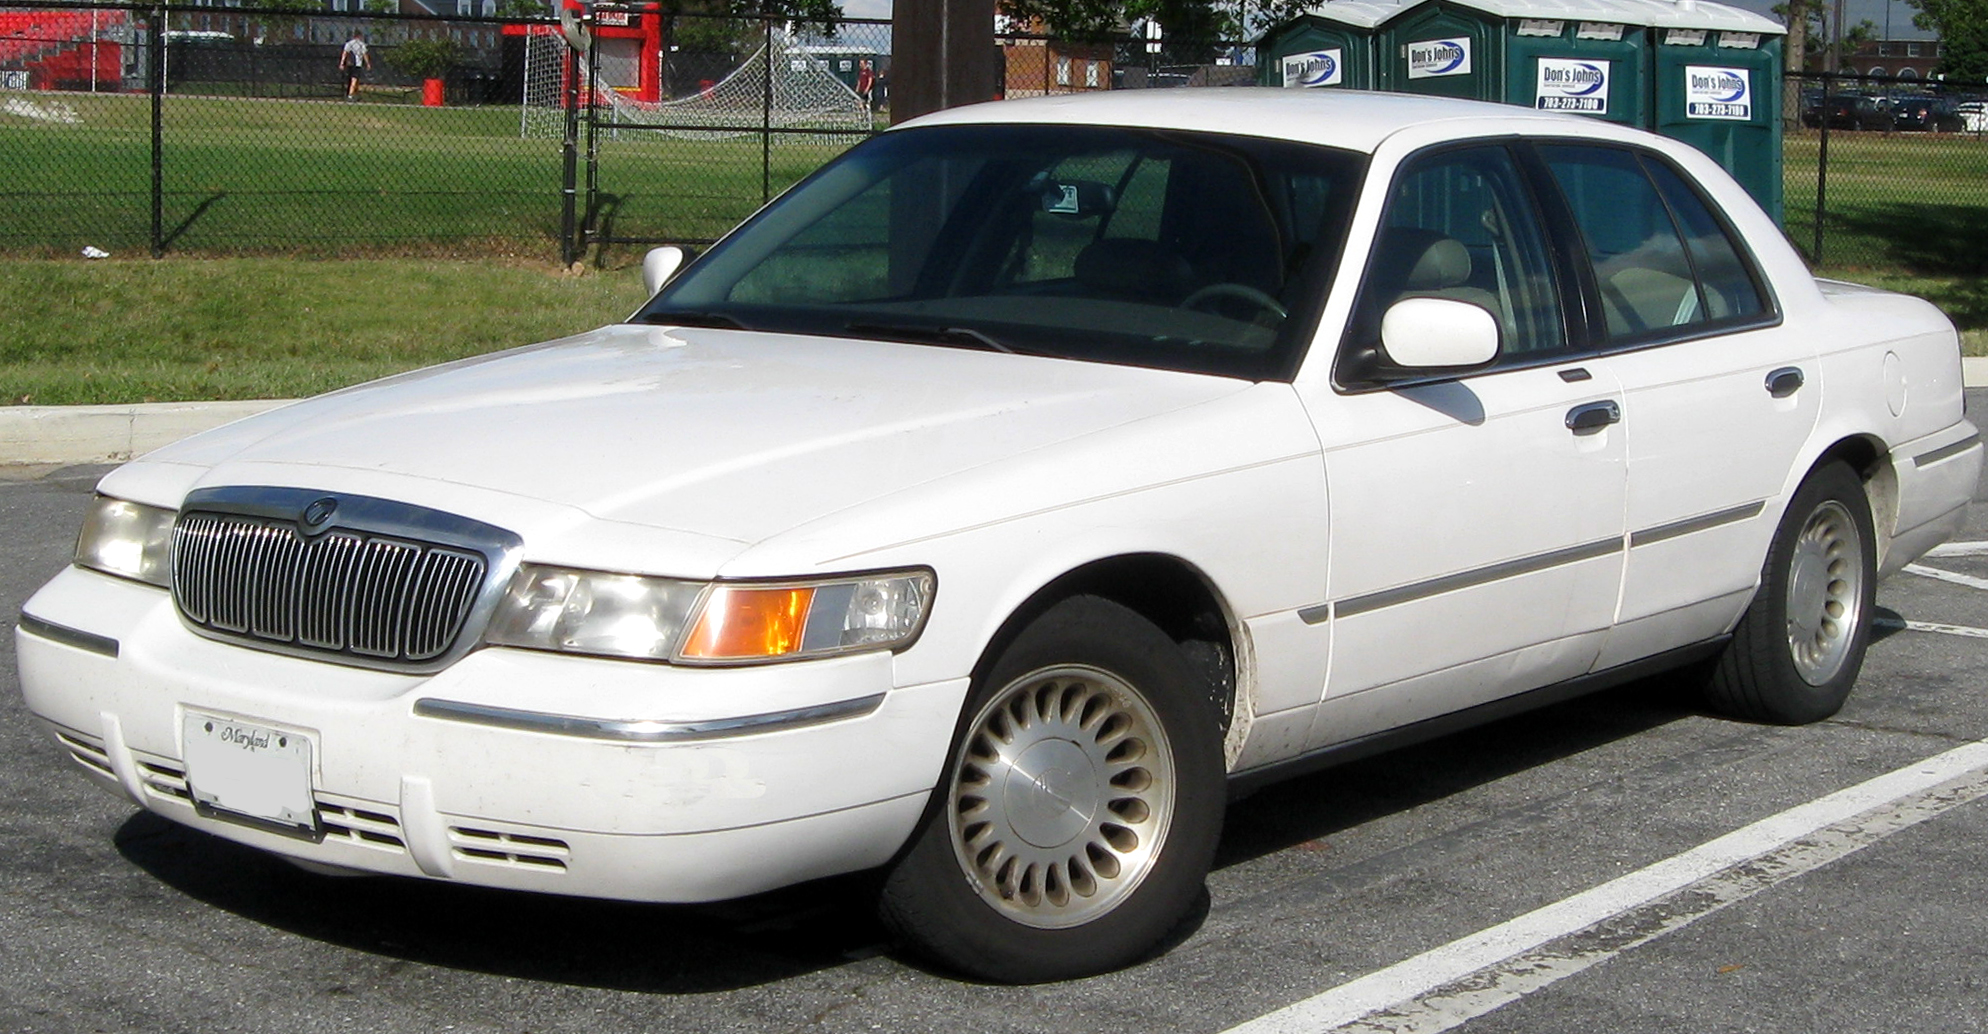 mercury grand marquis pics #2